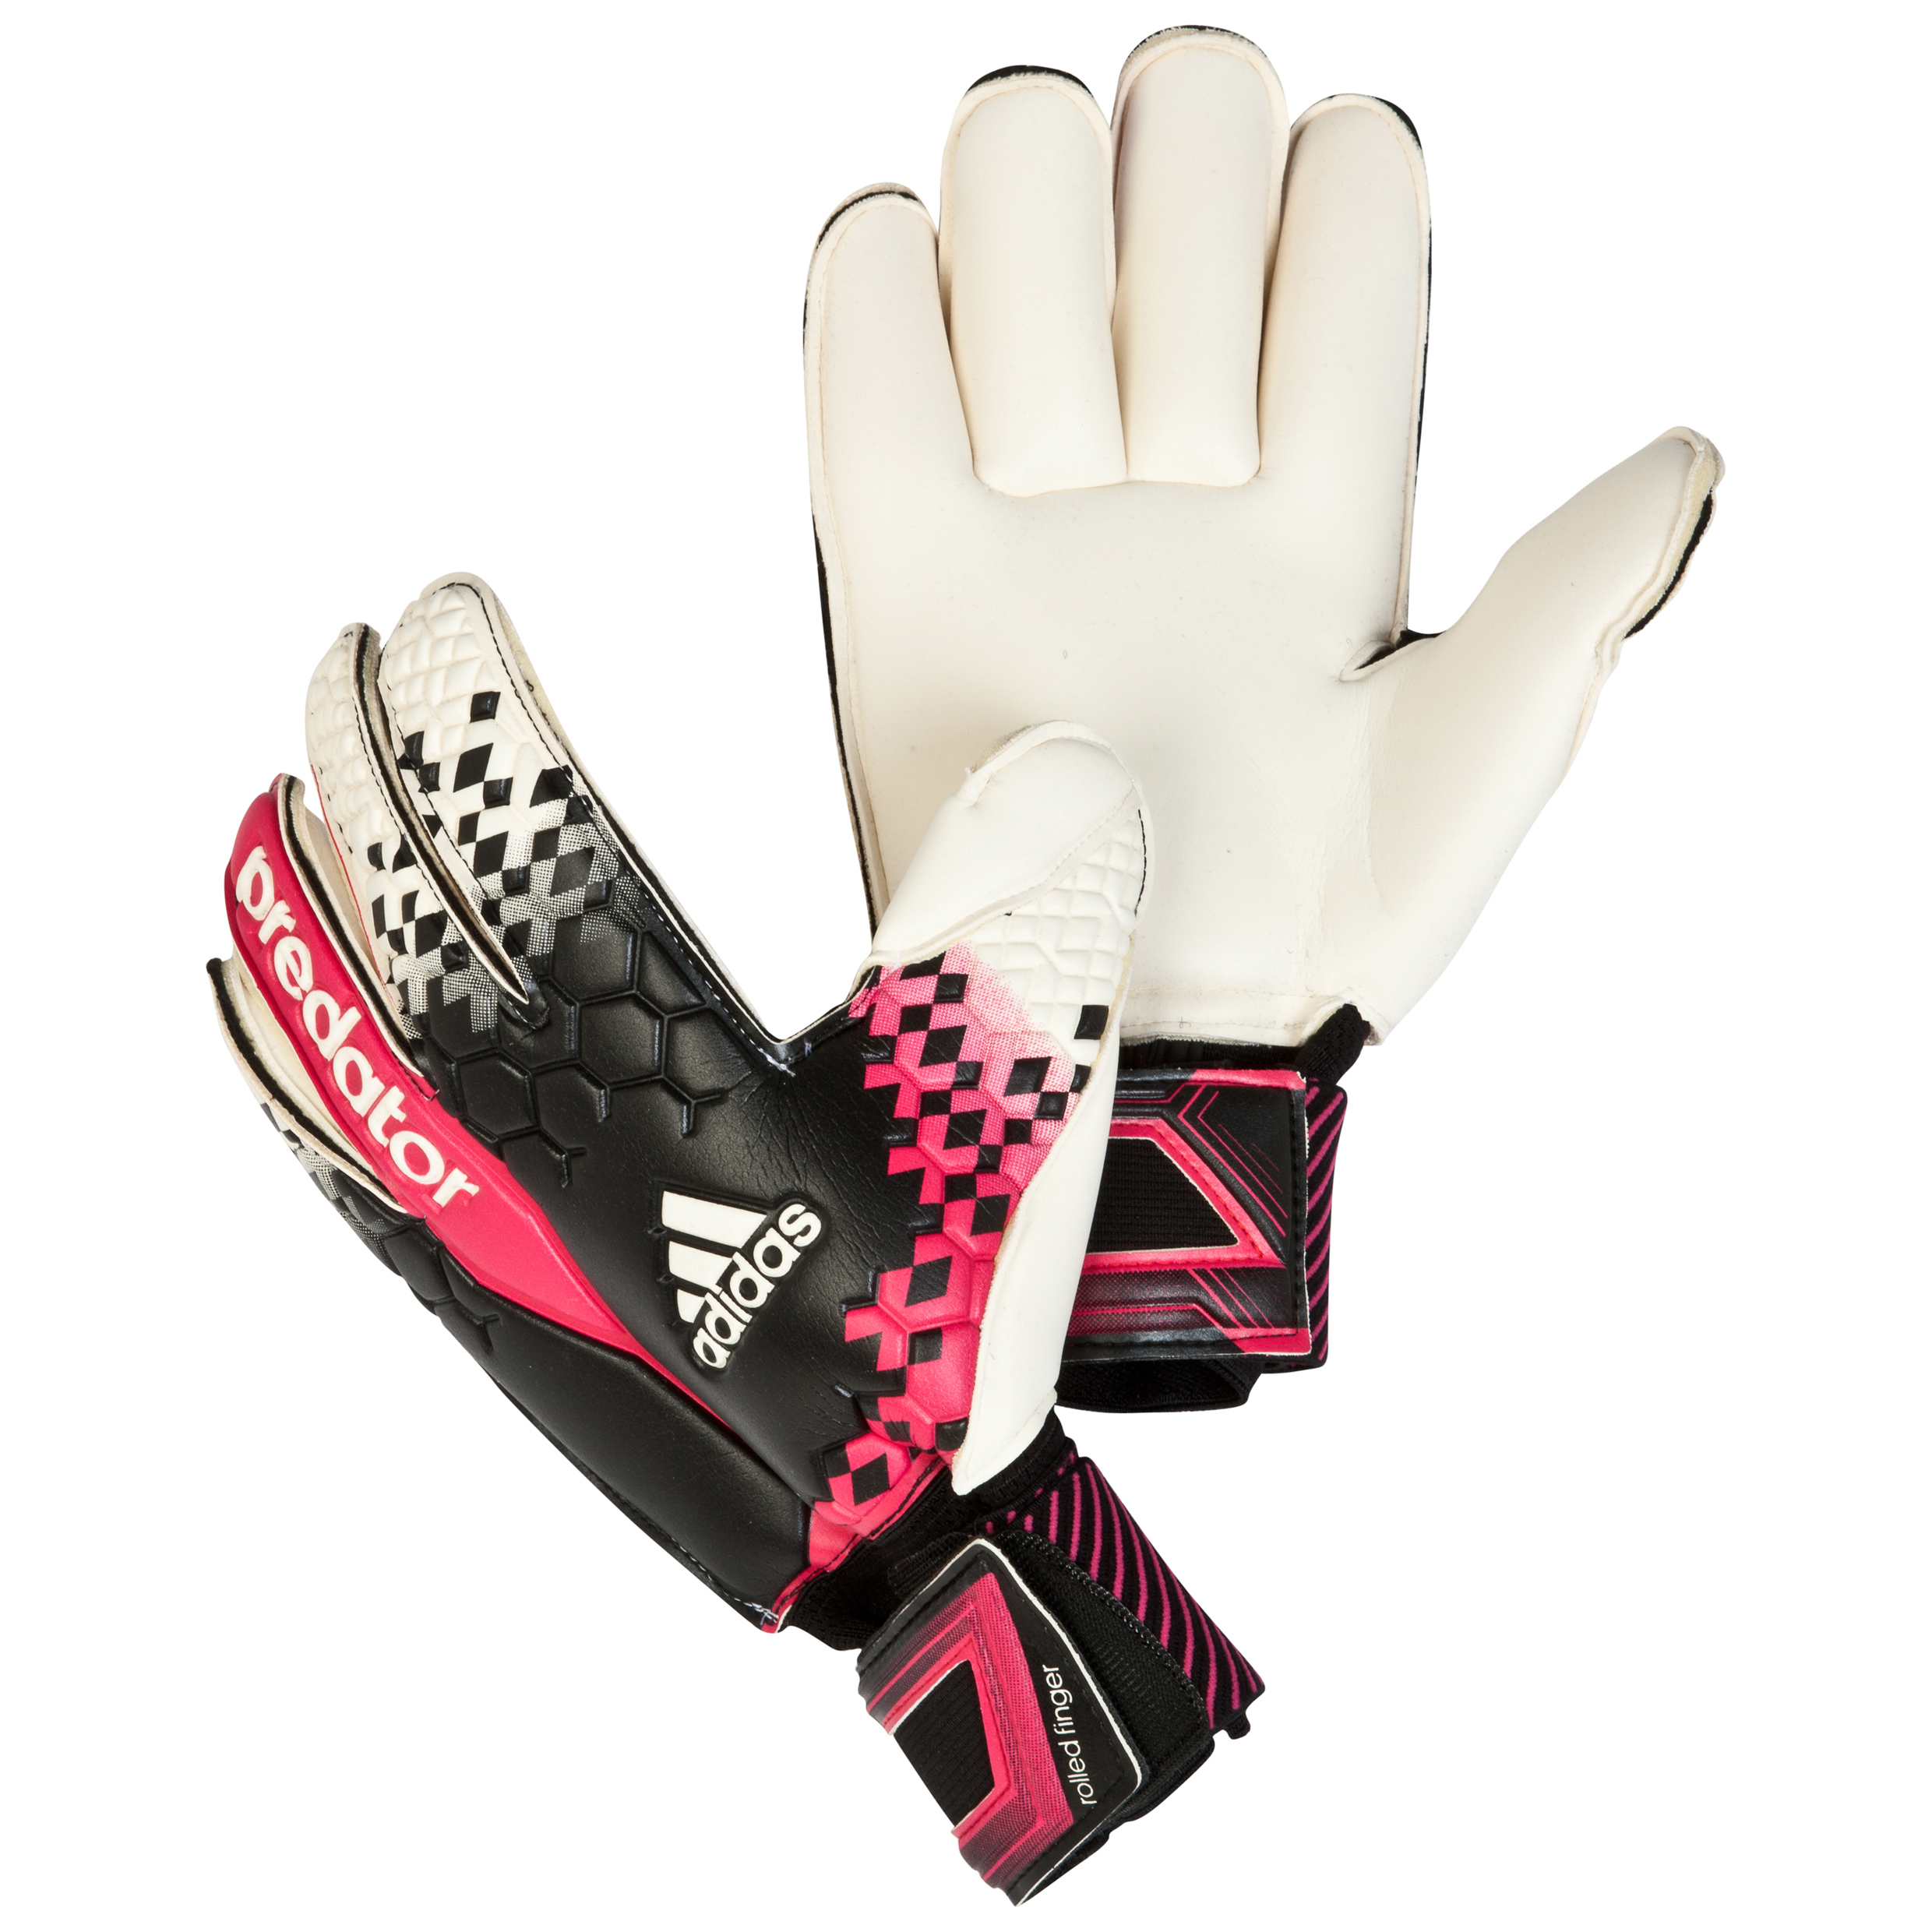 Adidas Predator Roll Finger Goalkeeper Gloves Black